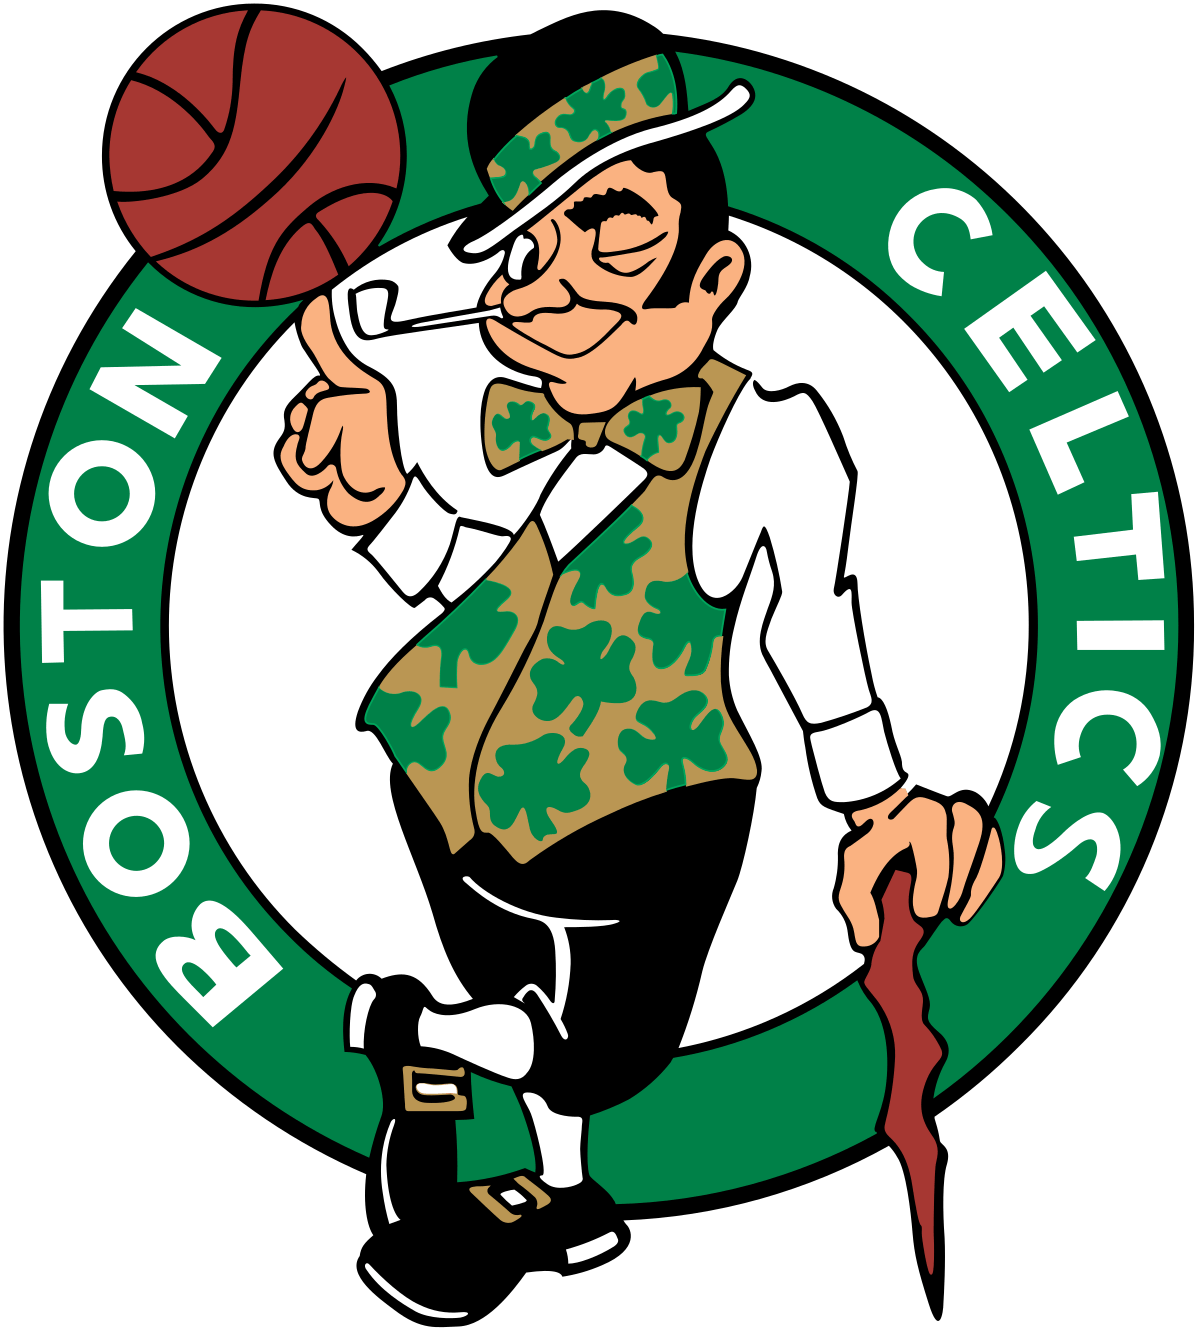 6 Worst and 5 Best Logos in Sports